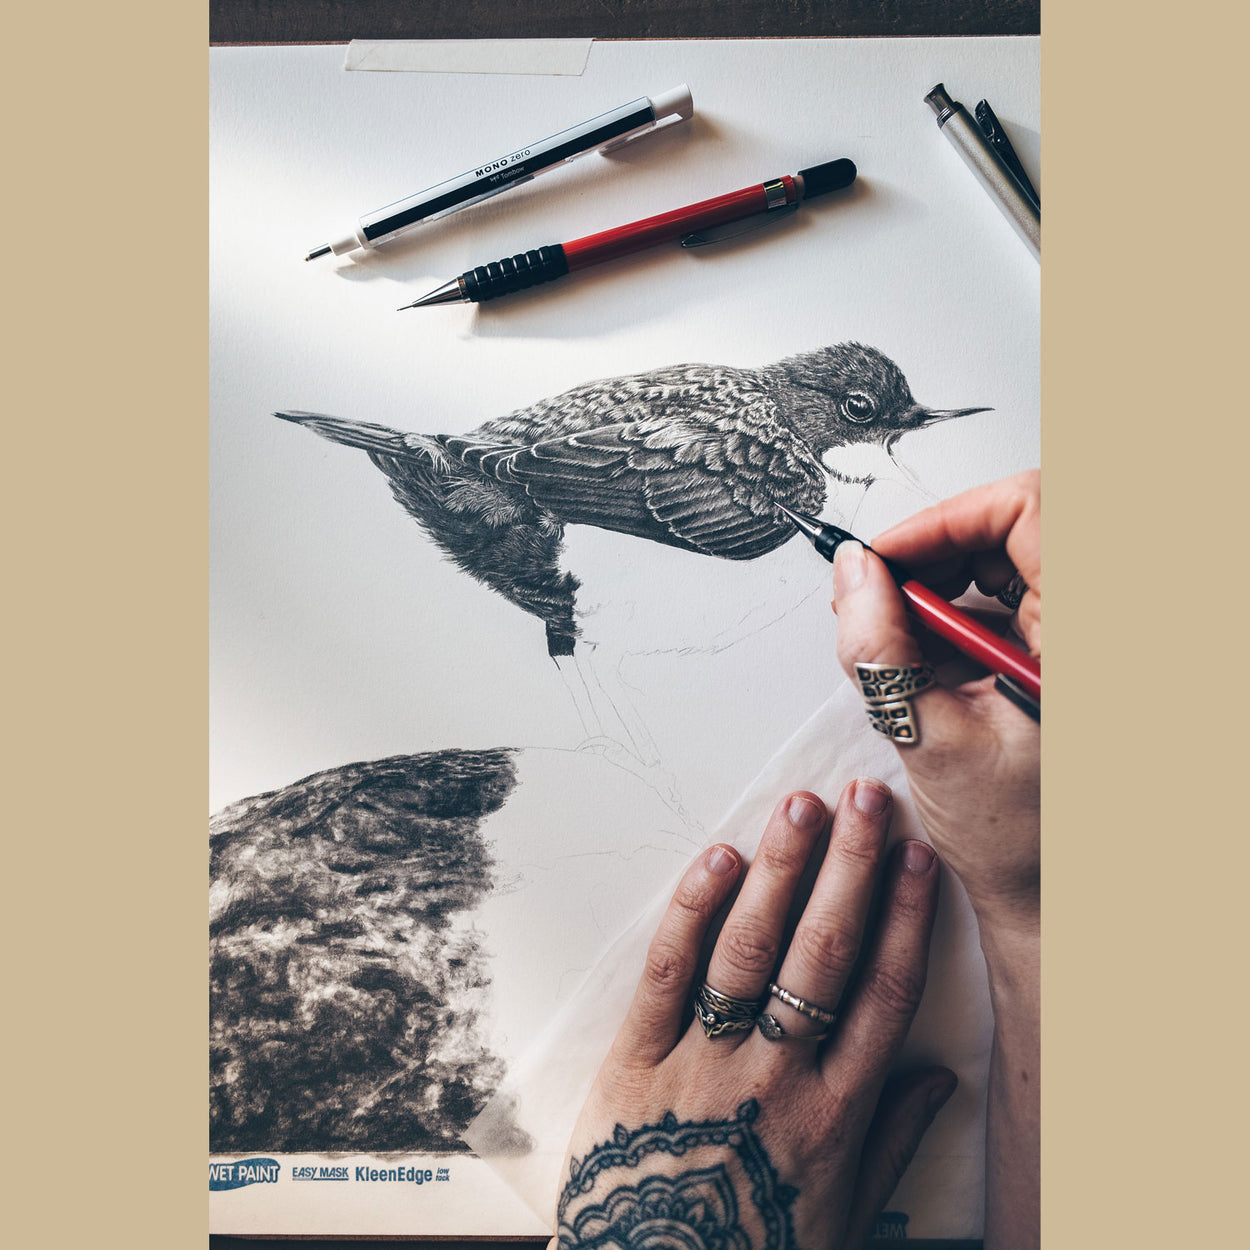 Dipper Bird Pencil Drawing in Progress - The Thriving Wild